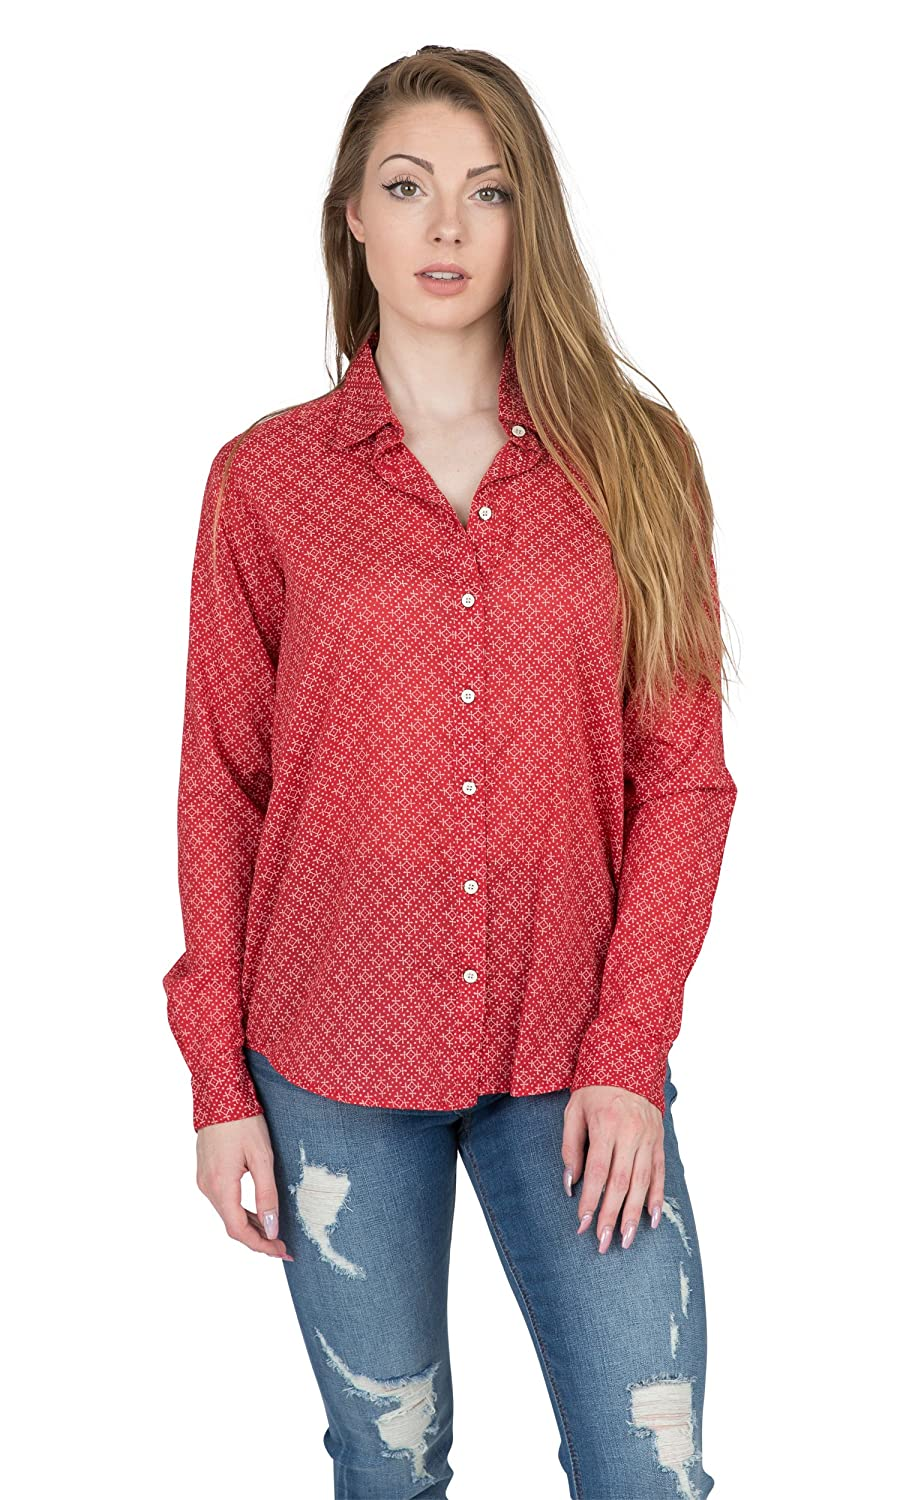 Velvet by Graham /& Spencer Emery Printed Cotton Button-up Shirt